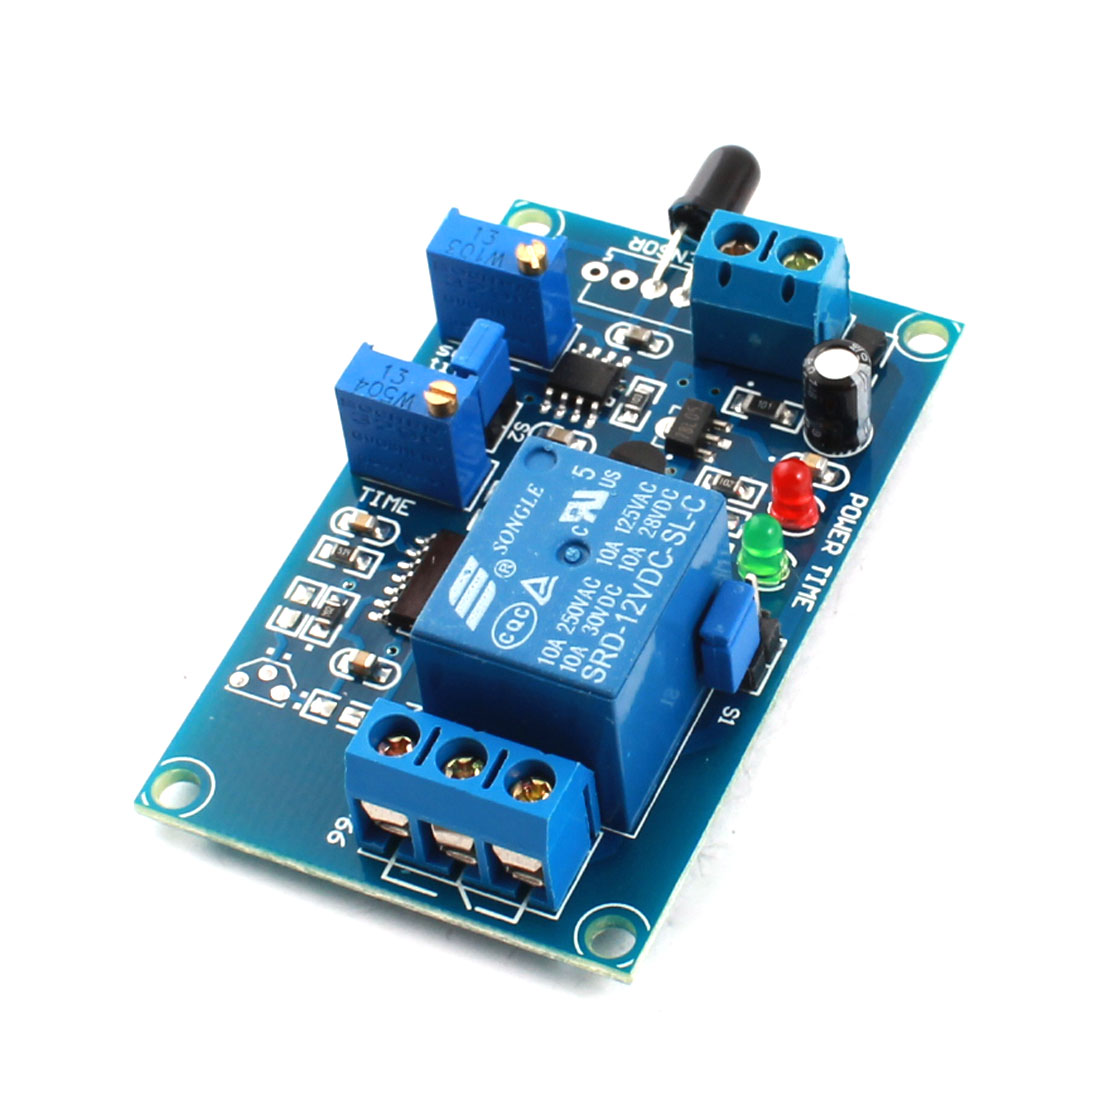 DC12V 2-LED Lamp 1CH Flame Sensor Infrared Trigger Reciever Time Delay Relay PCB Board Module